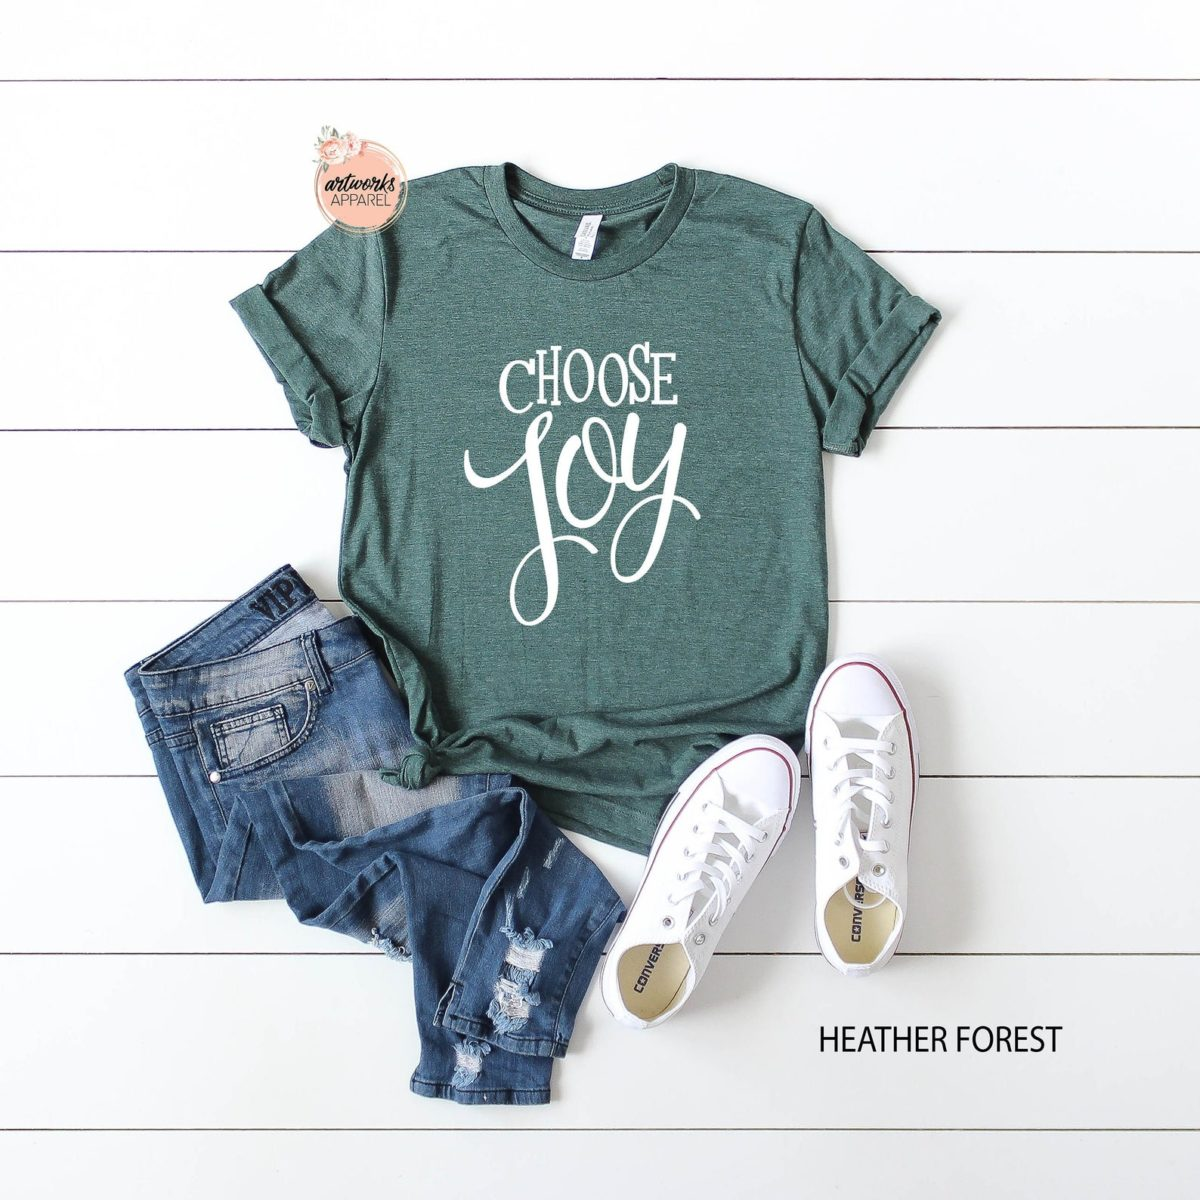 26 awesome etsy t-shirts that send a positive message and make great gifts | parenting questions | mamas uncut il 1588xn.2826861406 t9eq